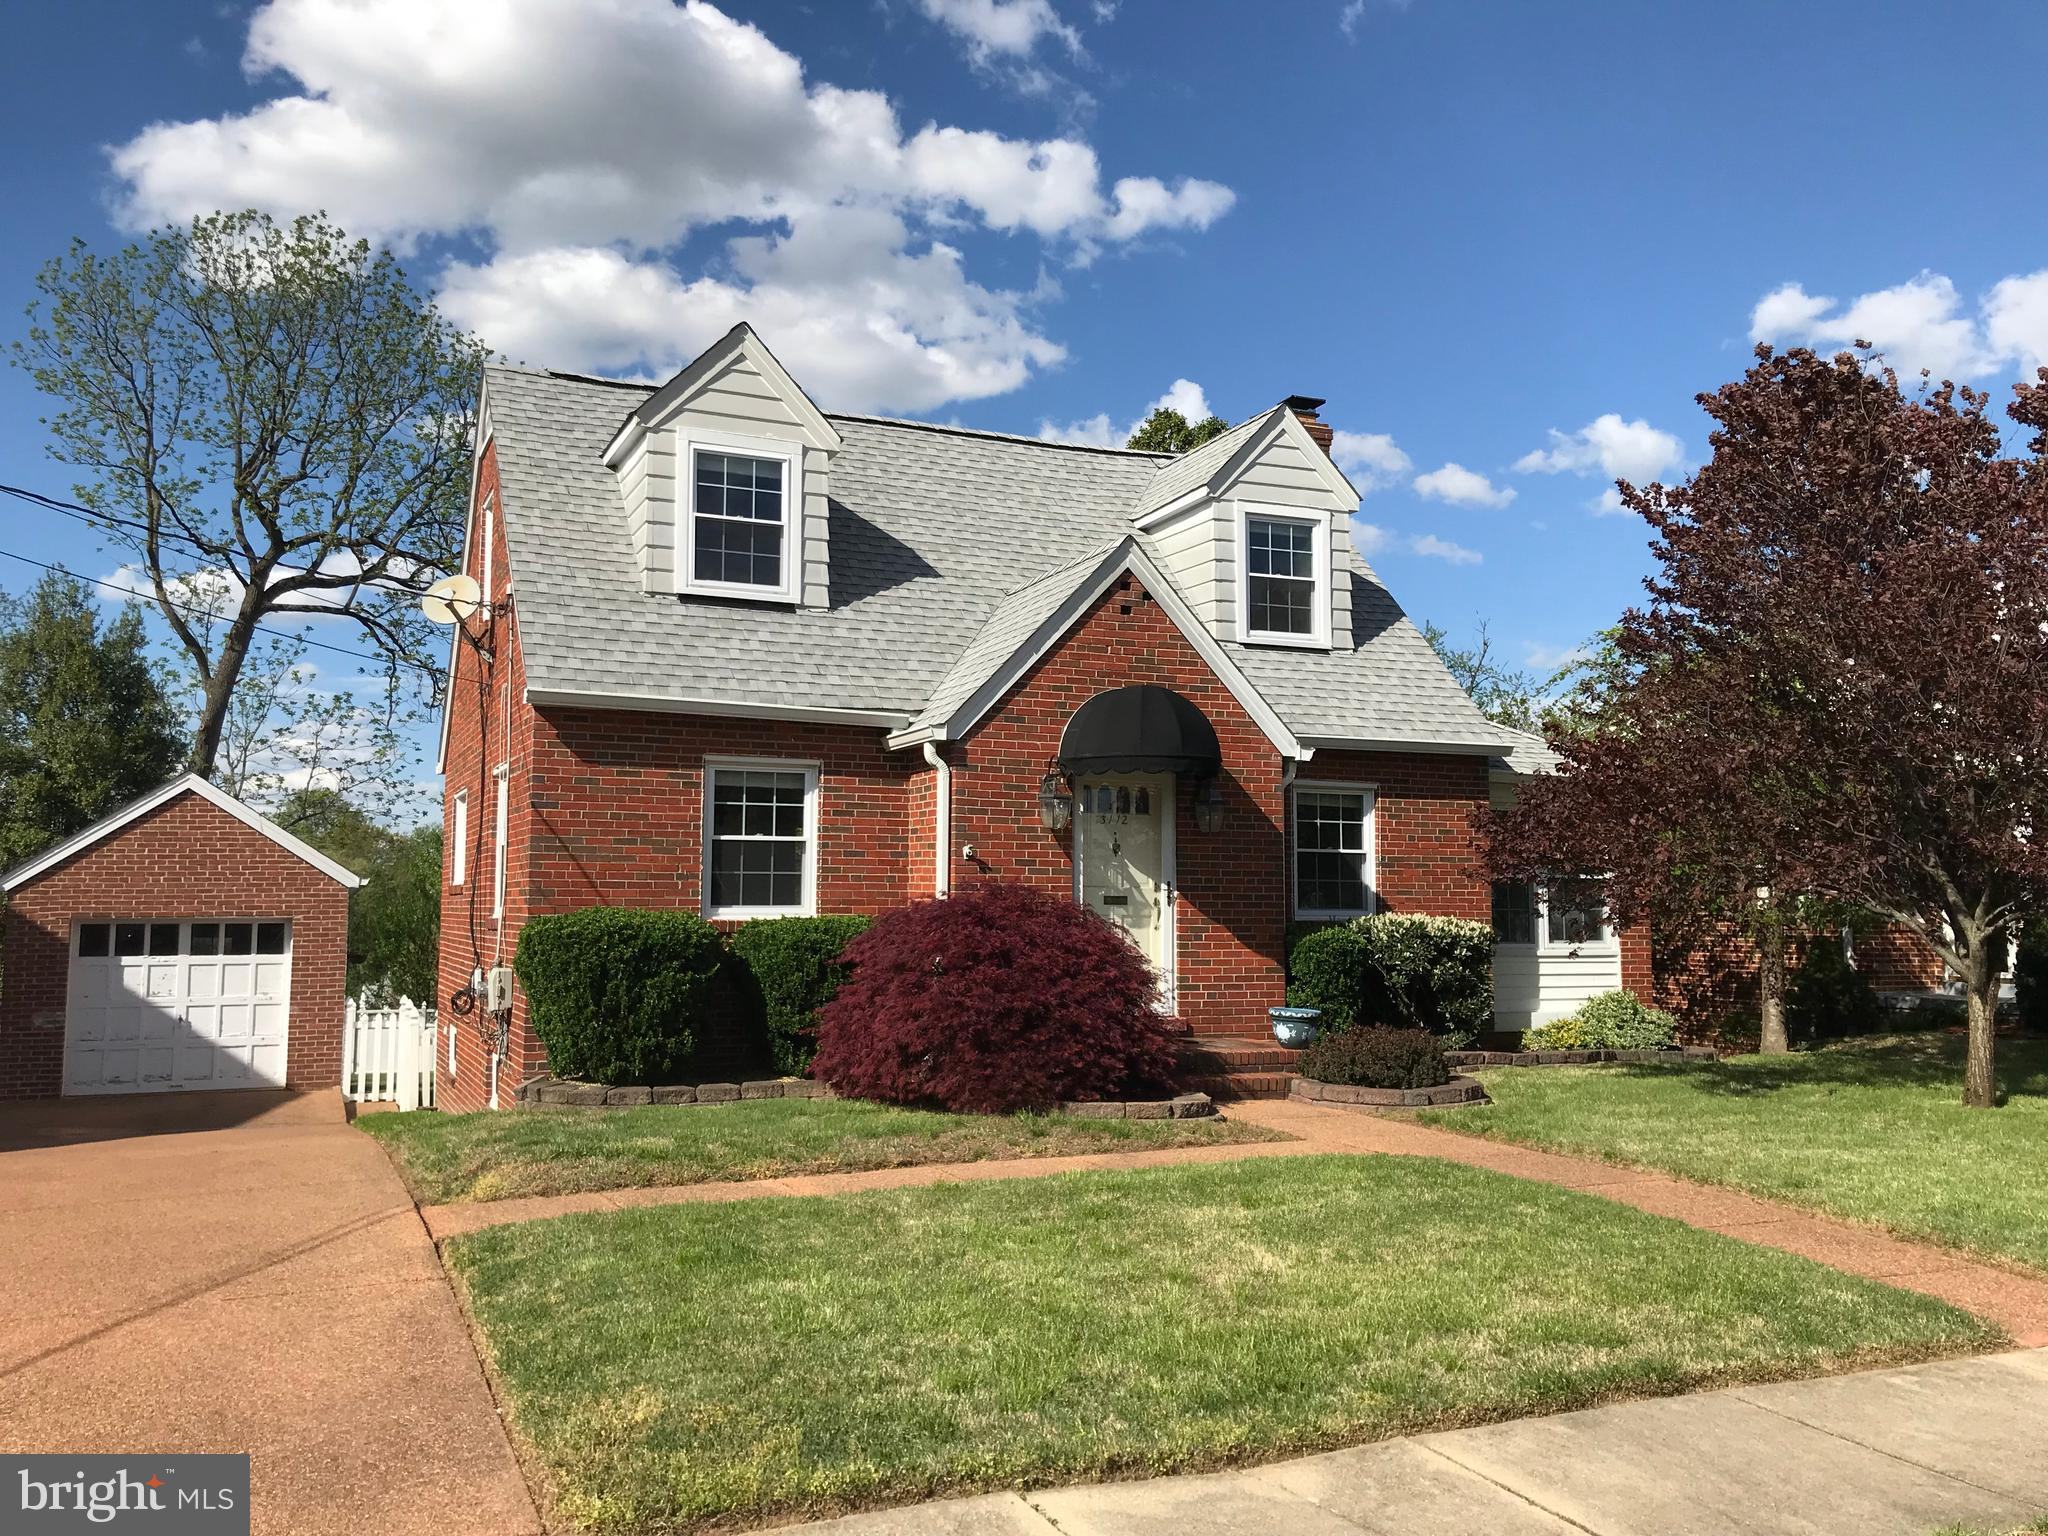 MUST SEE!!! Minutes away from CRYSTAL CITY and The New AMAZON HQ2!  You are welcome to preview this beautiful and charming Cape Code, south of Historic Old Town Alexandria! The main level has a wonderful Living Room with a Fireplace, Large Dinning Area, Updated Cherry color custom made Hagerstown Kitchen with New Appliances. Stunning Sunroom with a garden view. The second level has two large and sunny Bedrooms. This home has a walk-out basement with a full bathroom. The backyard is absolutely phenomenal. Primer Location to many stores, banks, coffee shops, bike trails. This house is near  by Huntington Metro Station, GW Parkway, I95/495, Route 1 which makes it very easy access to Arlington and DC.   New Roof 2018, New appliances 2018, New AC 2015, Fireplace and Chimney repaired 2014!